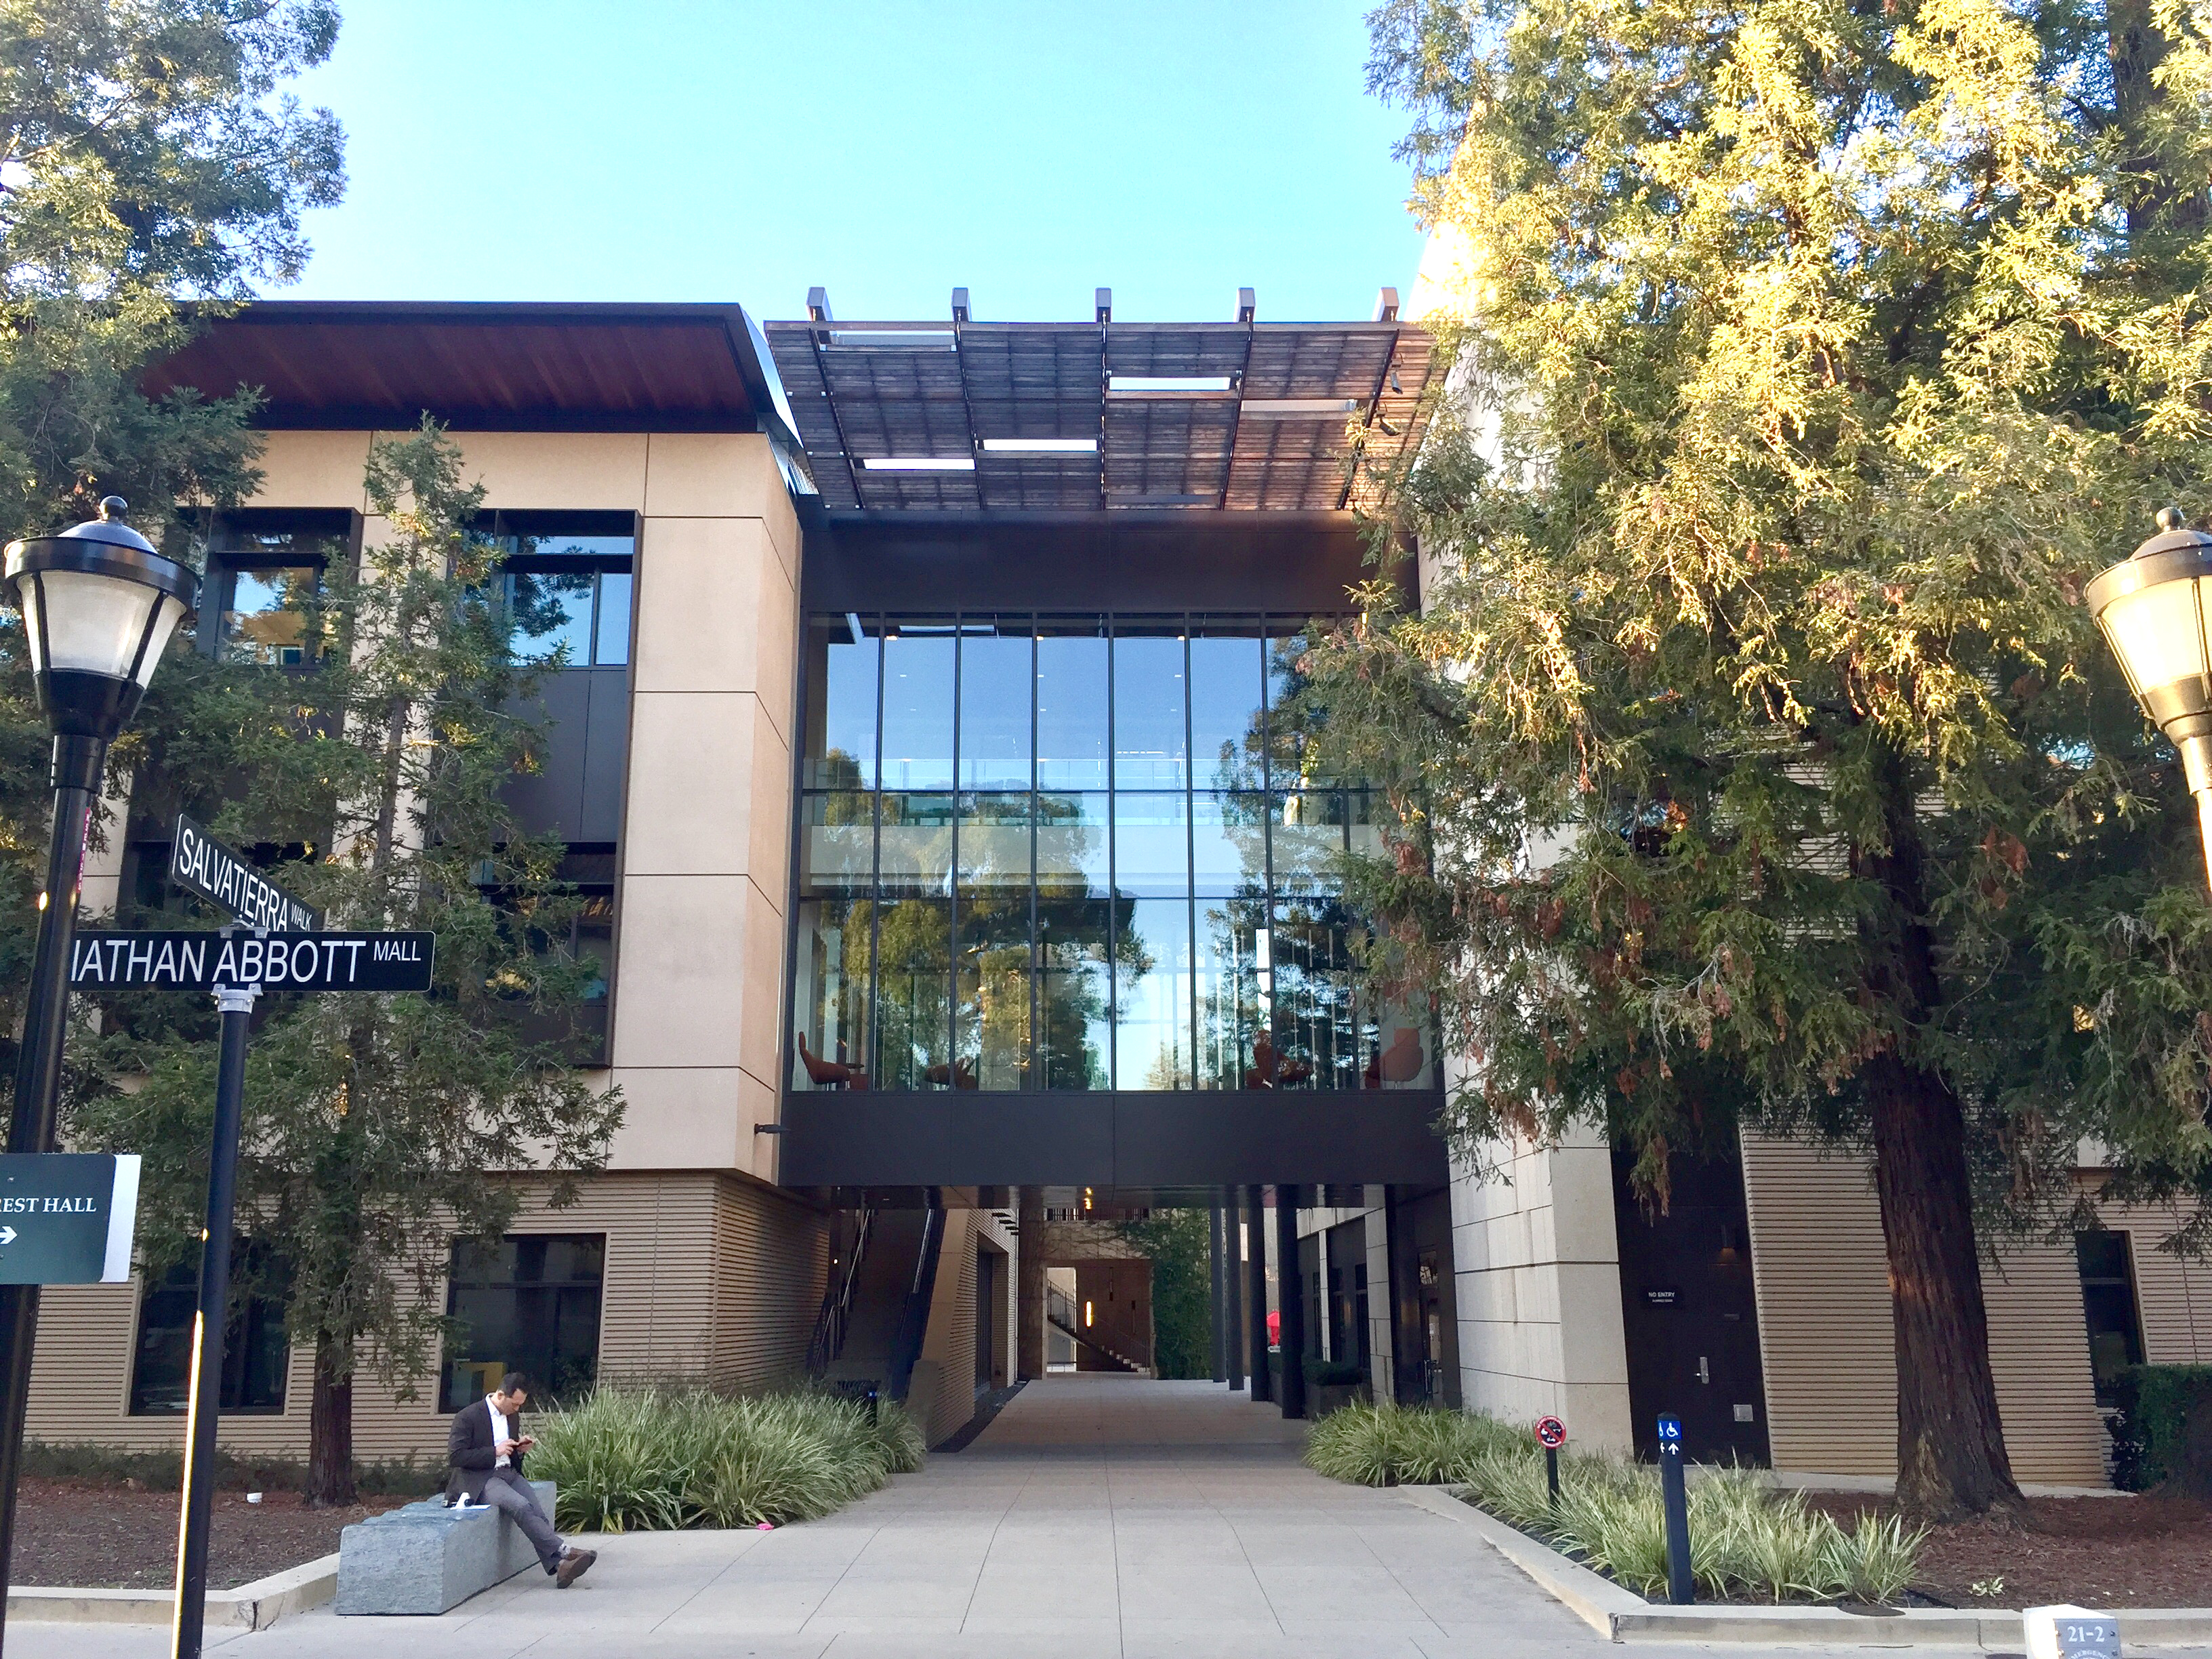 Stanford Law School - Palo Alto Daily Post